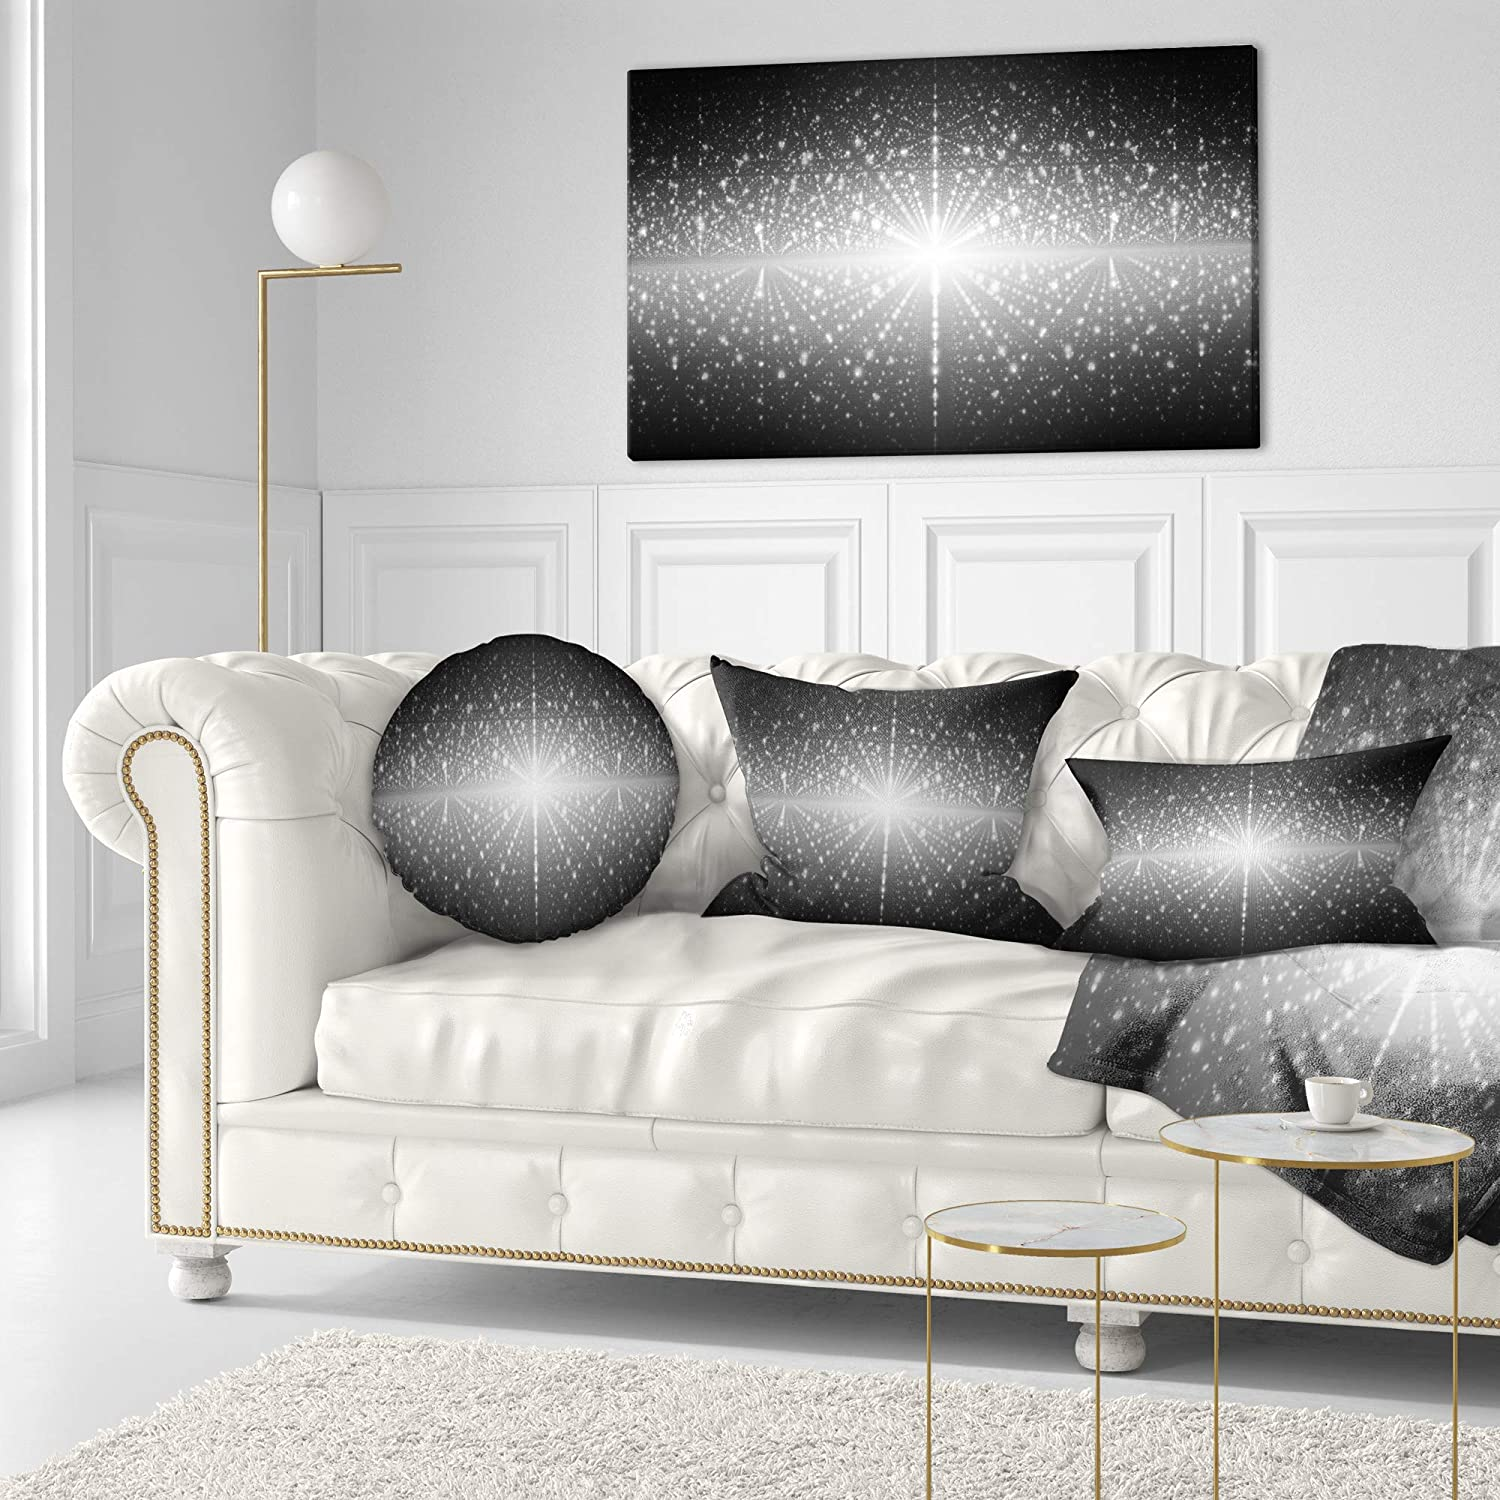 Designart CU16536-16-16-C Cosmic Galaxy with Shining Stars Abstract Round Cushion Cover for Living Room Sofa Throw Pillow 16 Inches